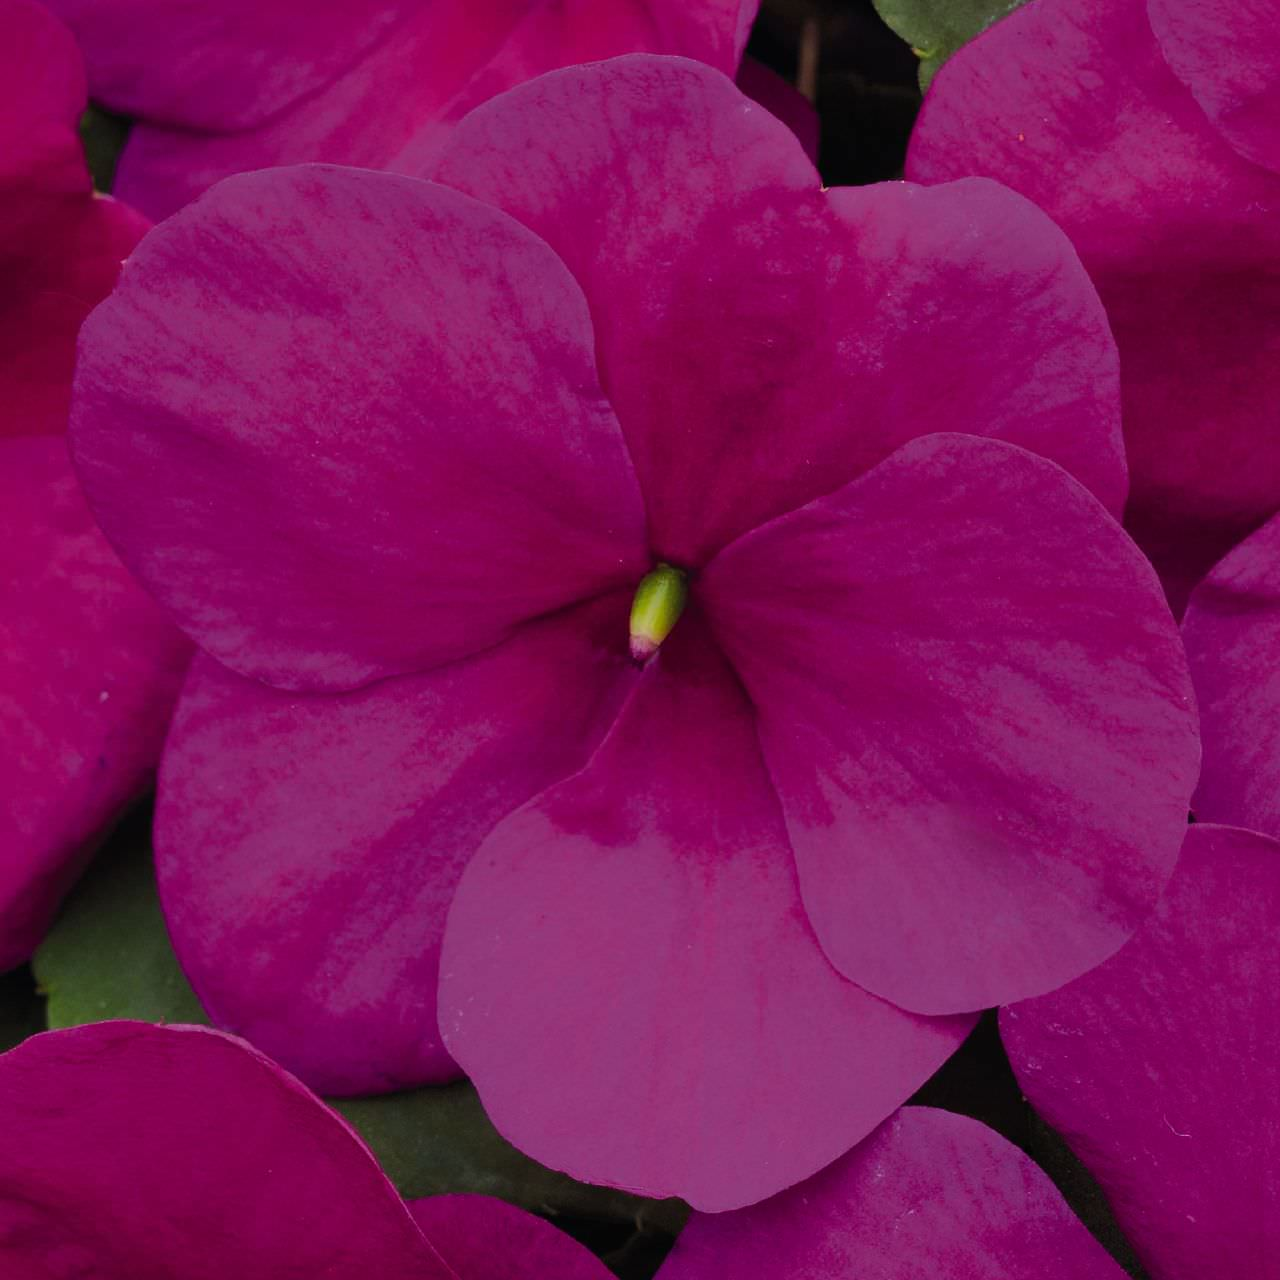 Impatiens Seeds 31 Impatiens Annual Flower Seeds